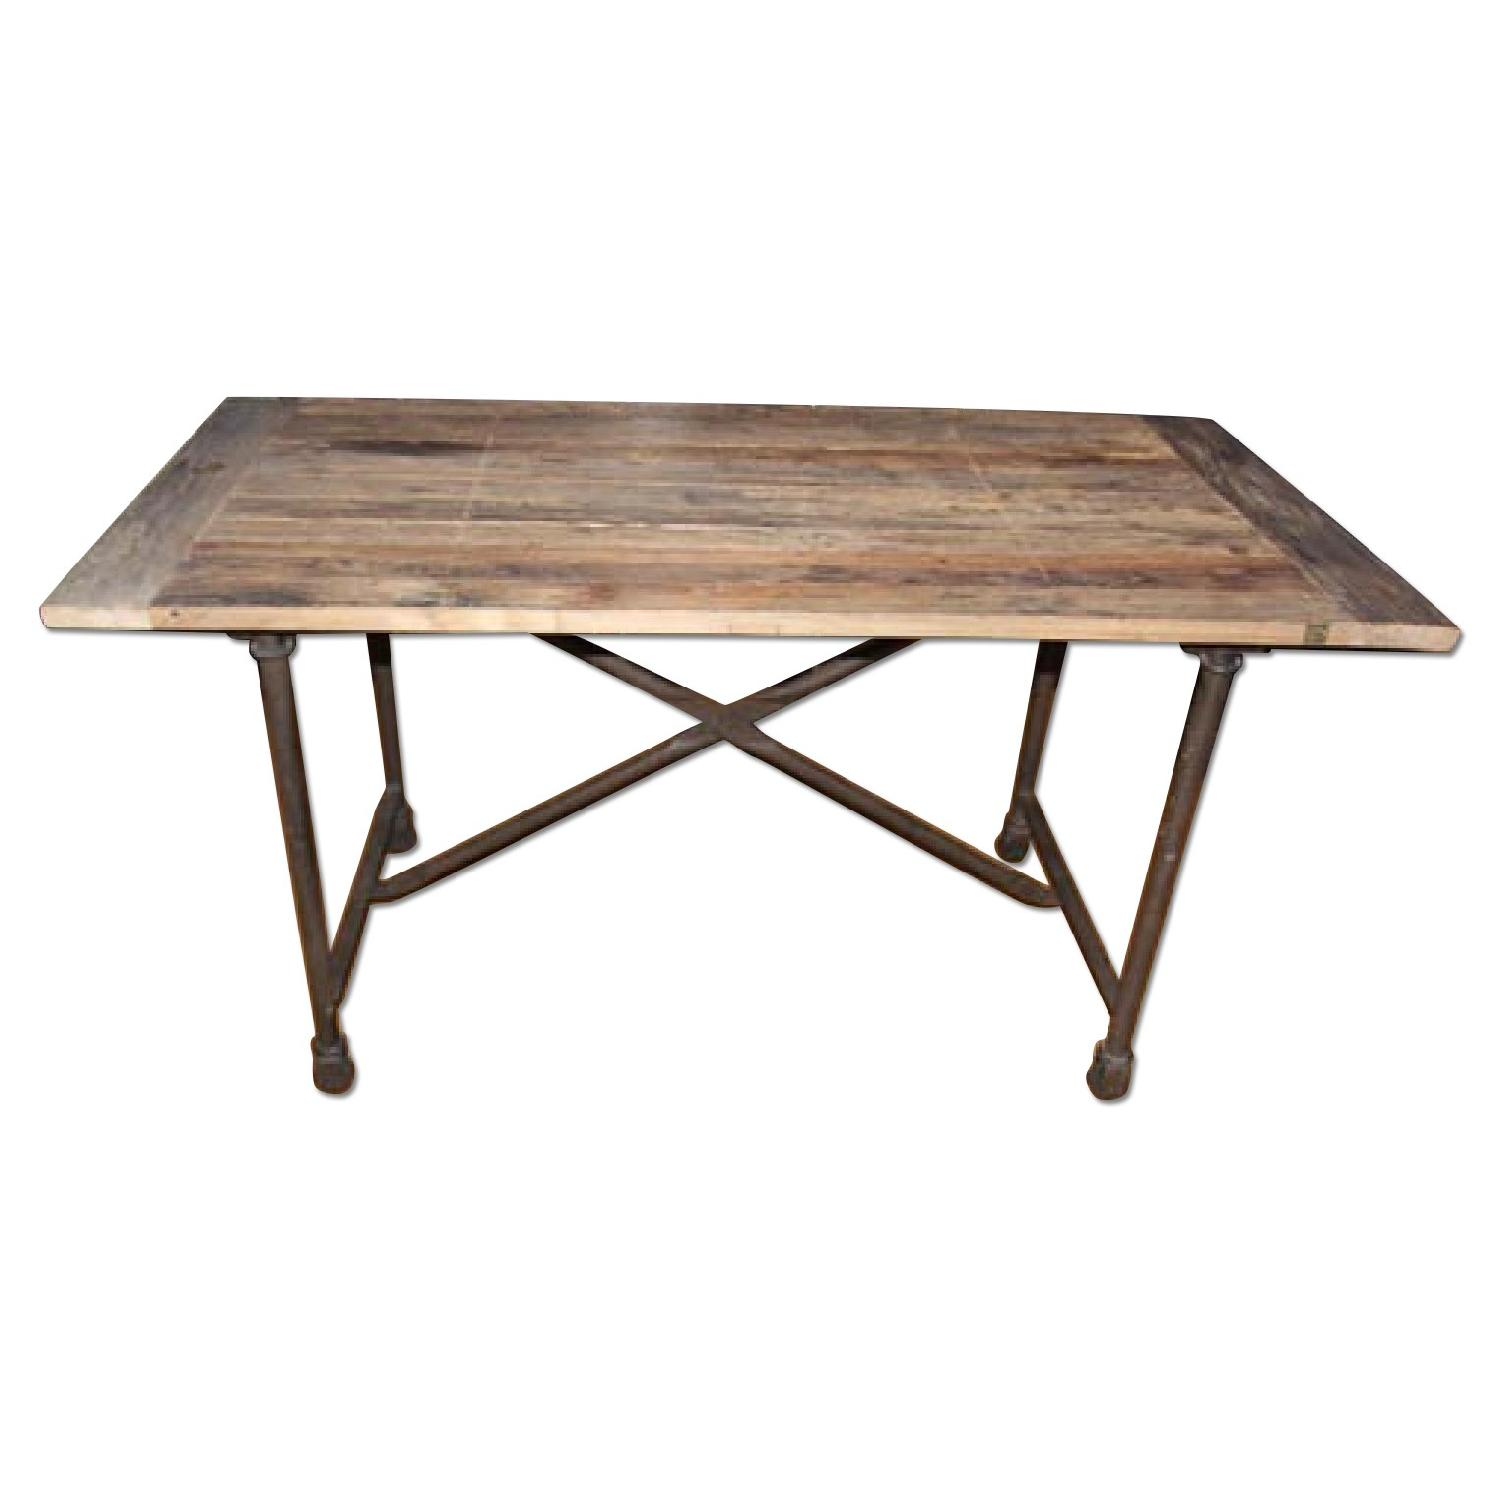 Restoration Hardware Flatiron Rectangular Dining Table - image-0